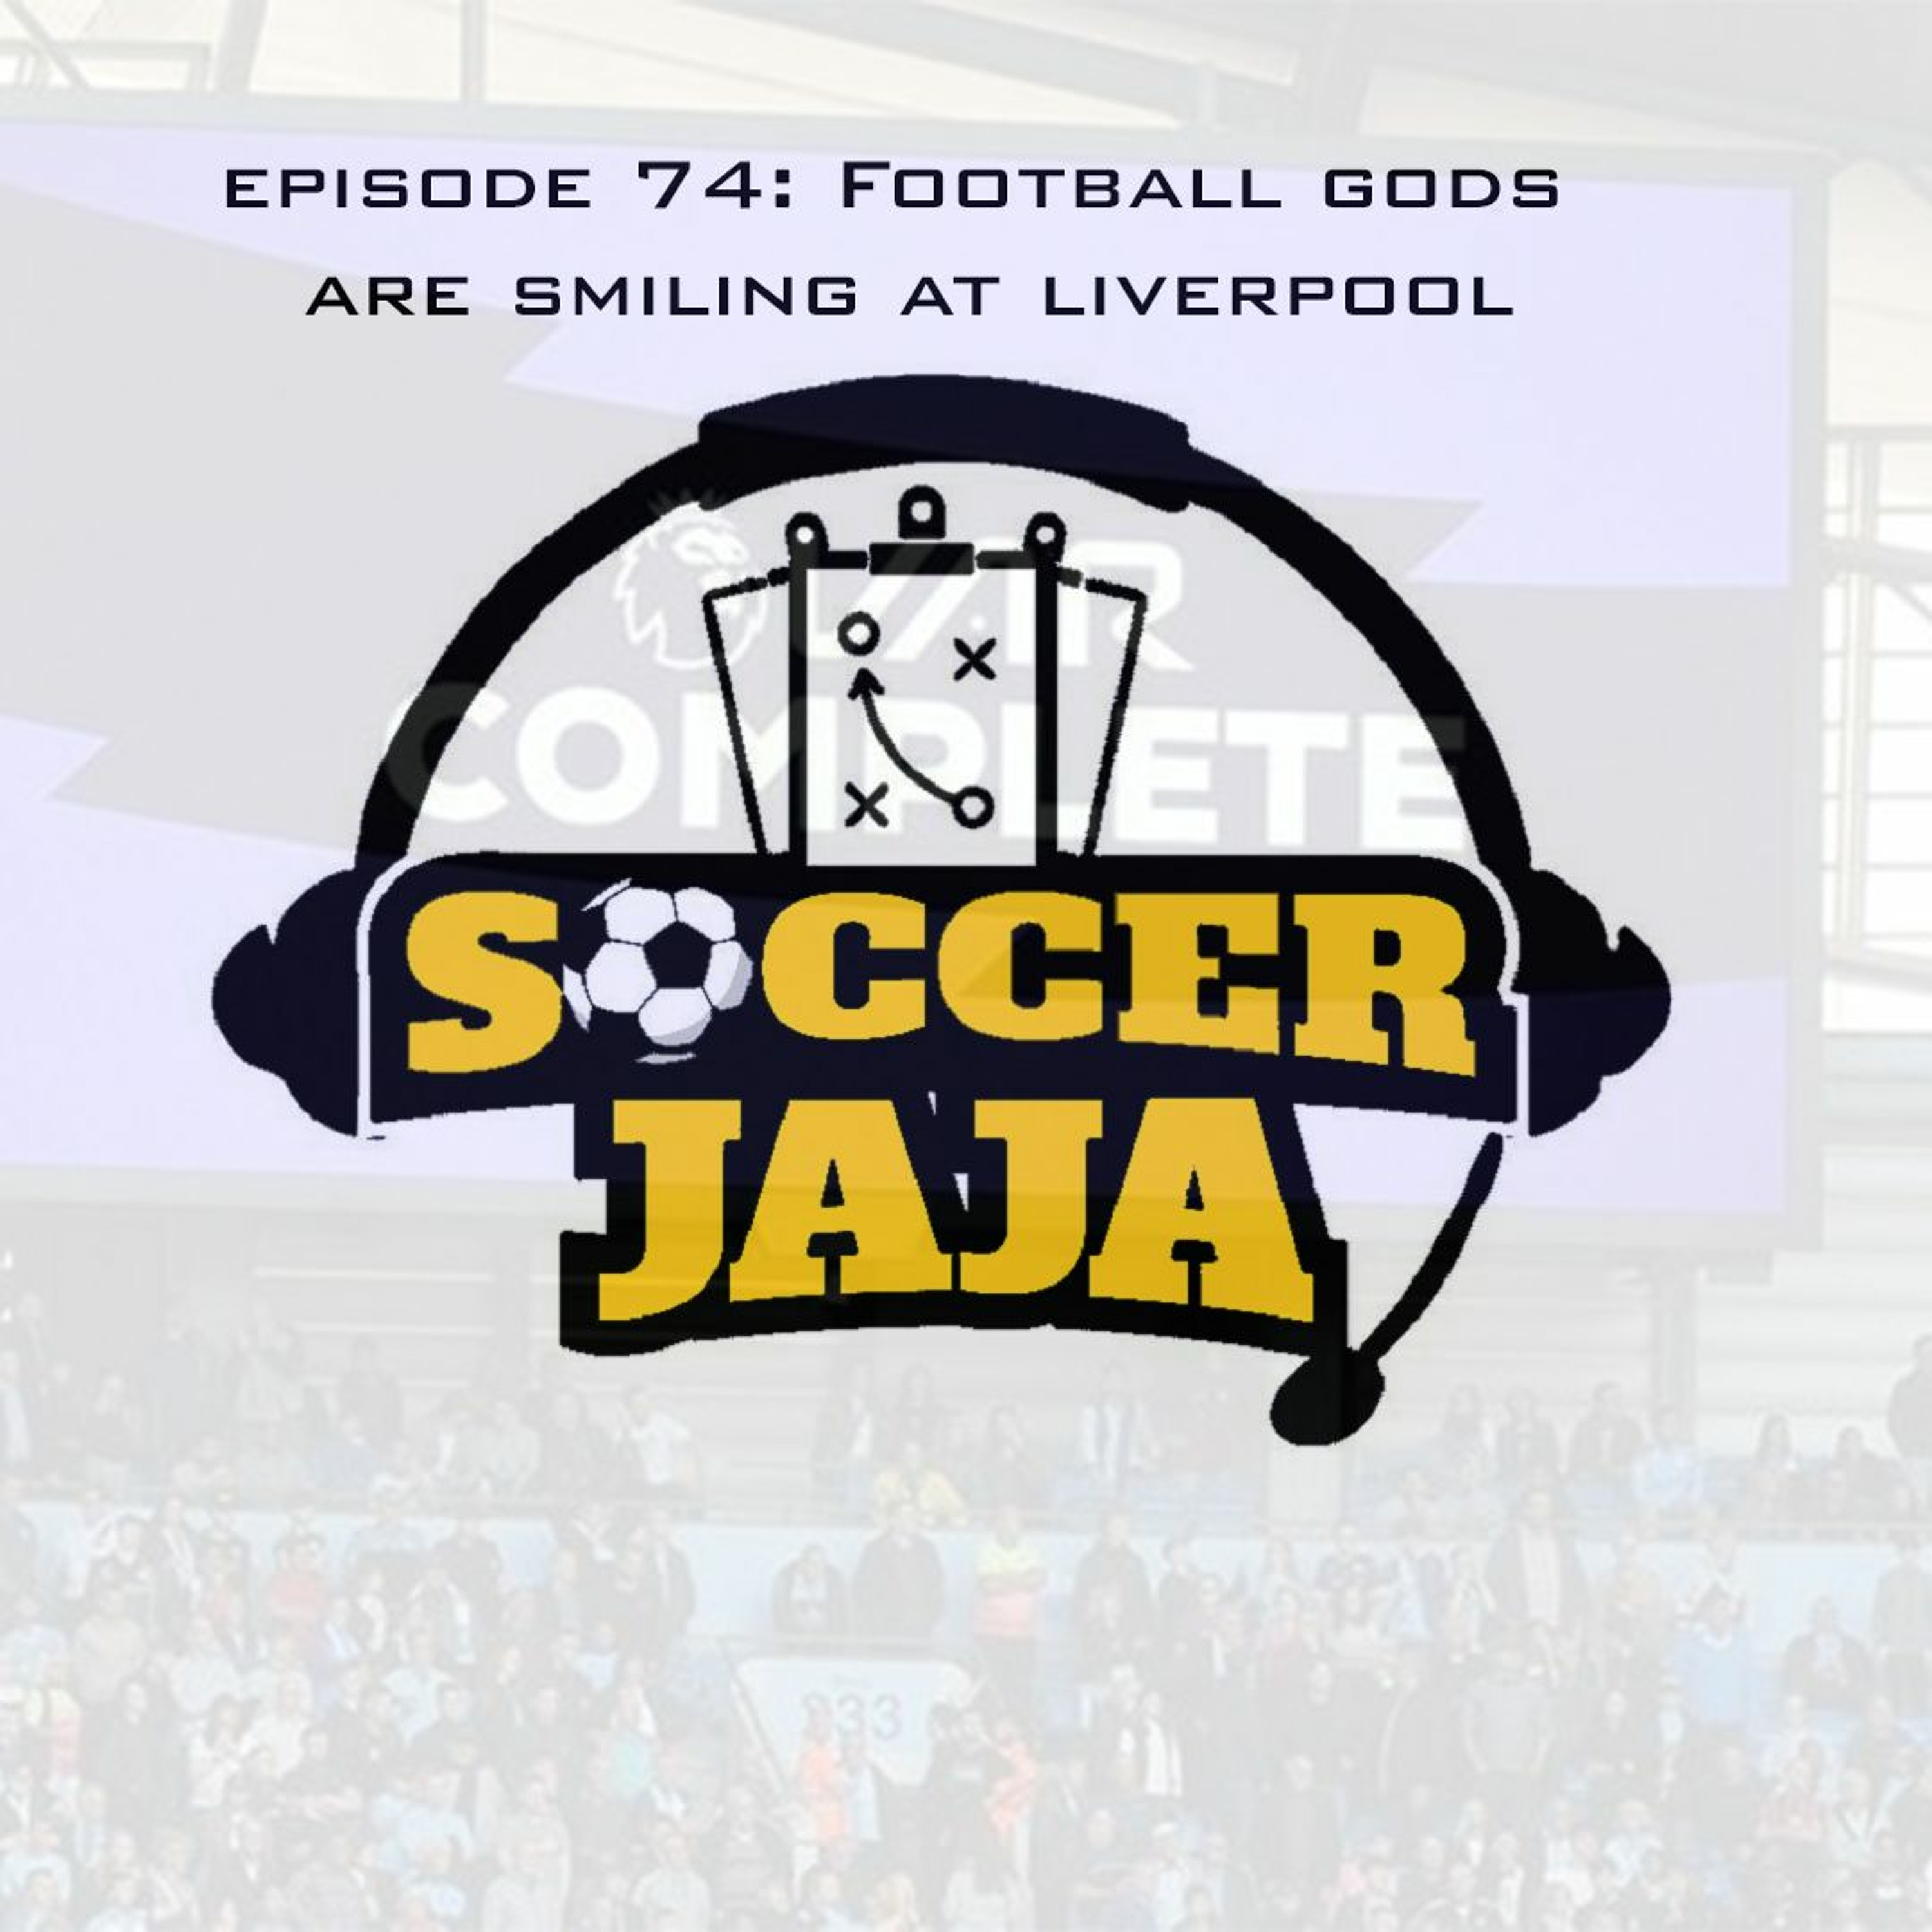 Episode 74: Football gods are smiling at Liverpool